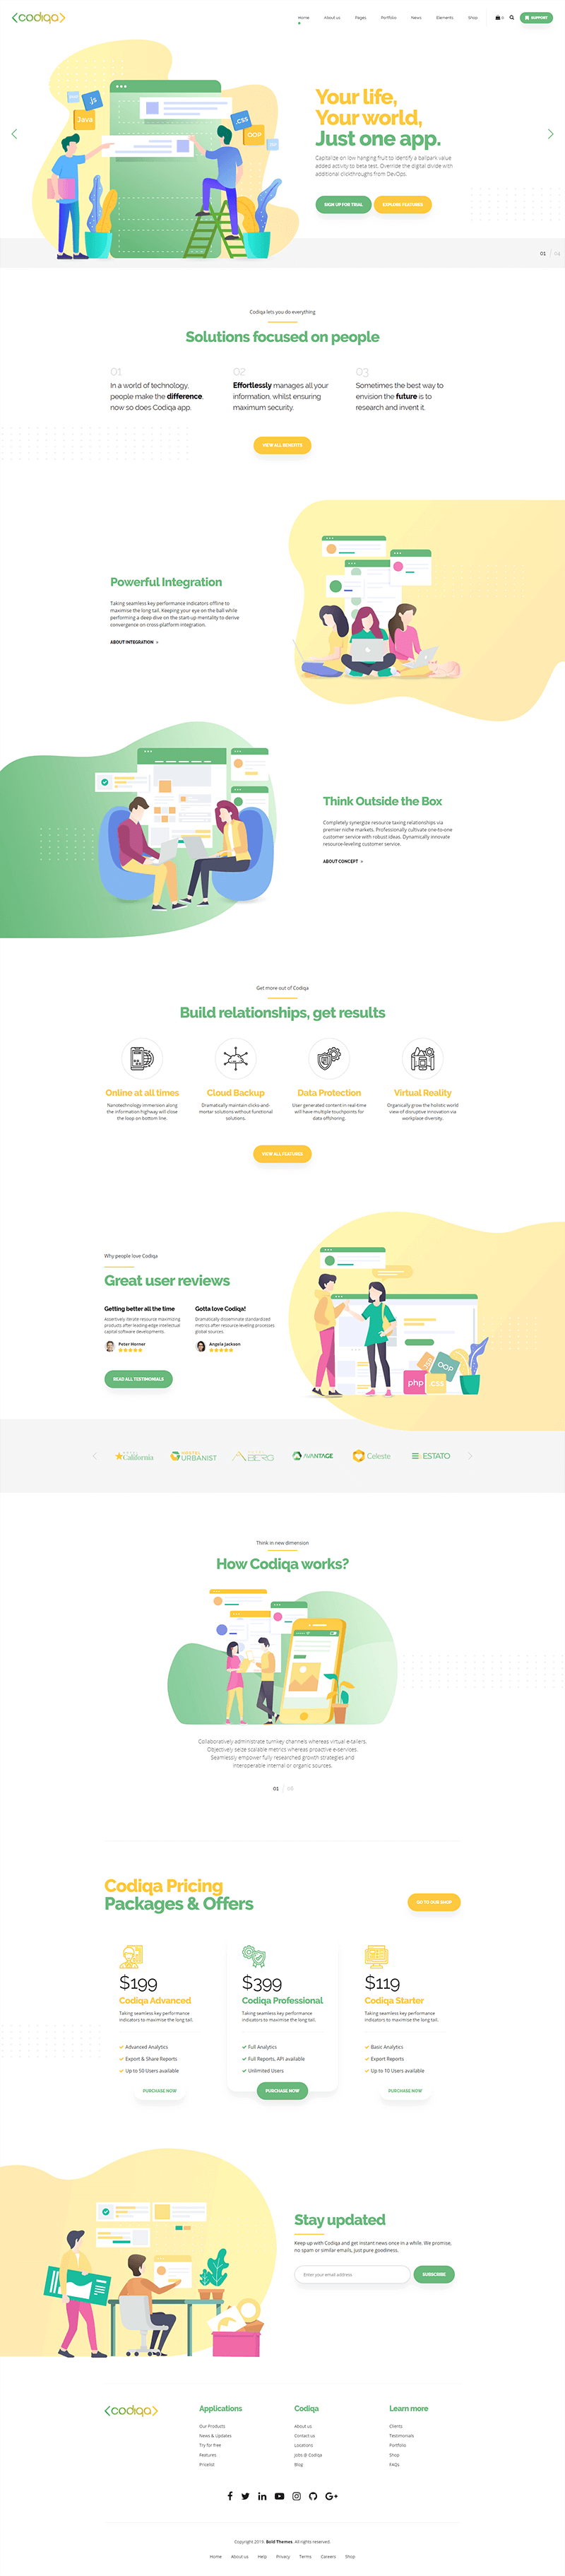 https://codiqa.bold-themes.com/wp-content/uploads/2019/10/demo-04-application.png